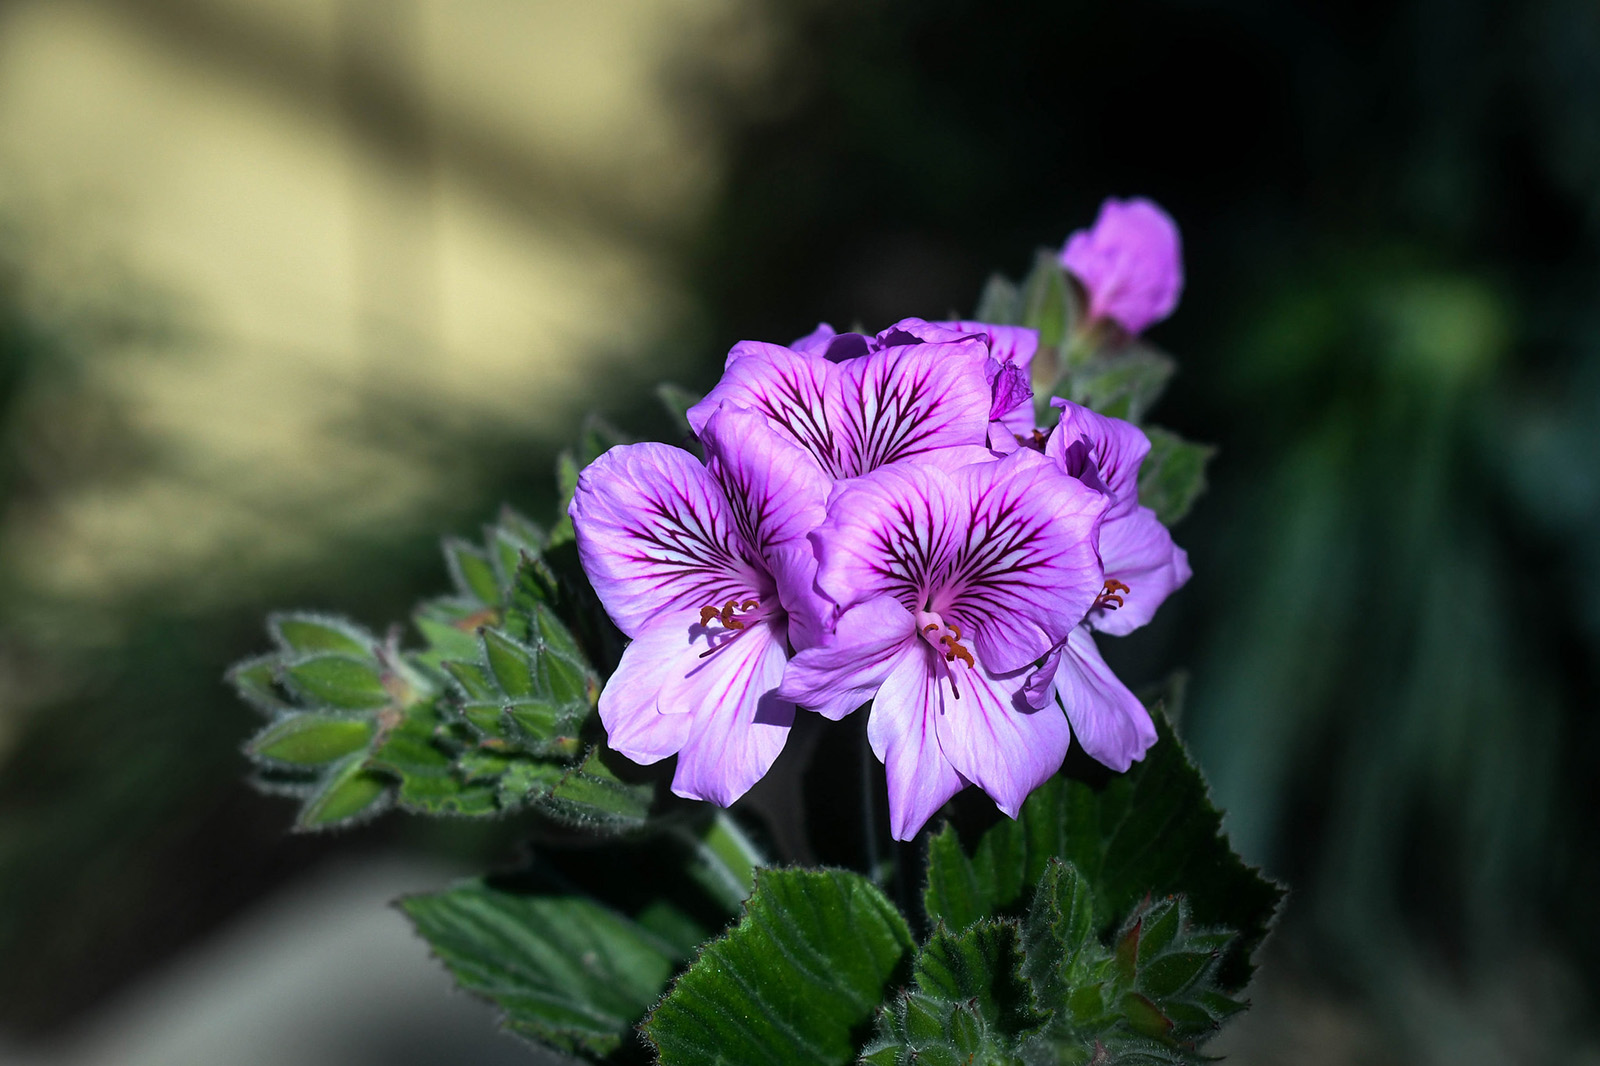 The flowers and foliage of <i>Pelargonium cucullatum</i>